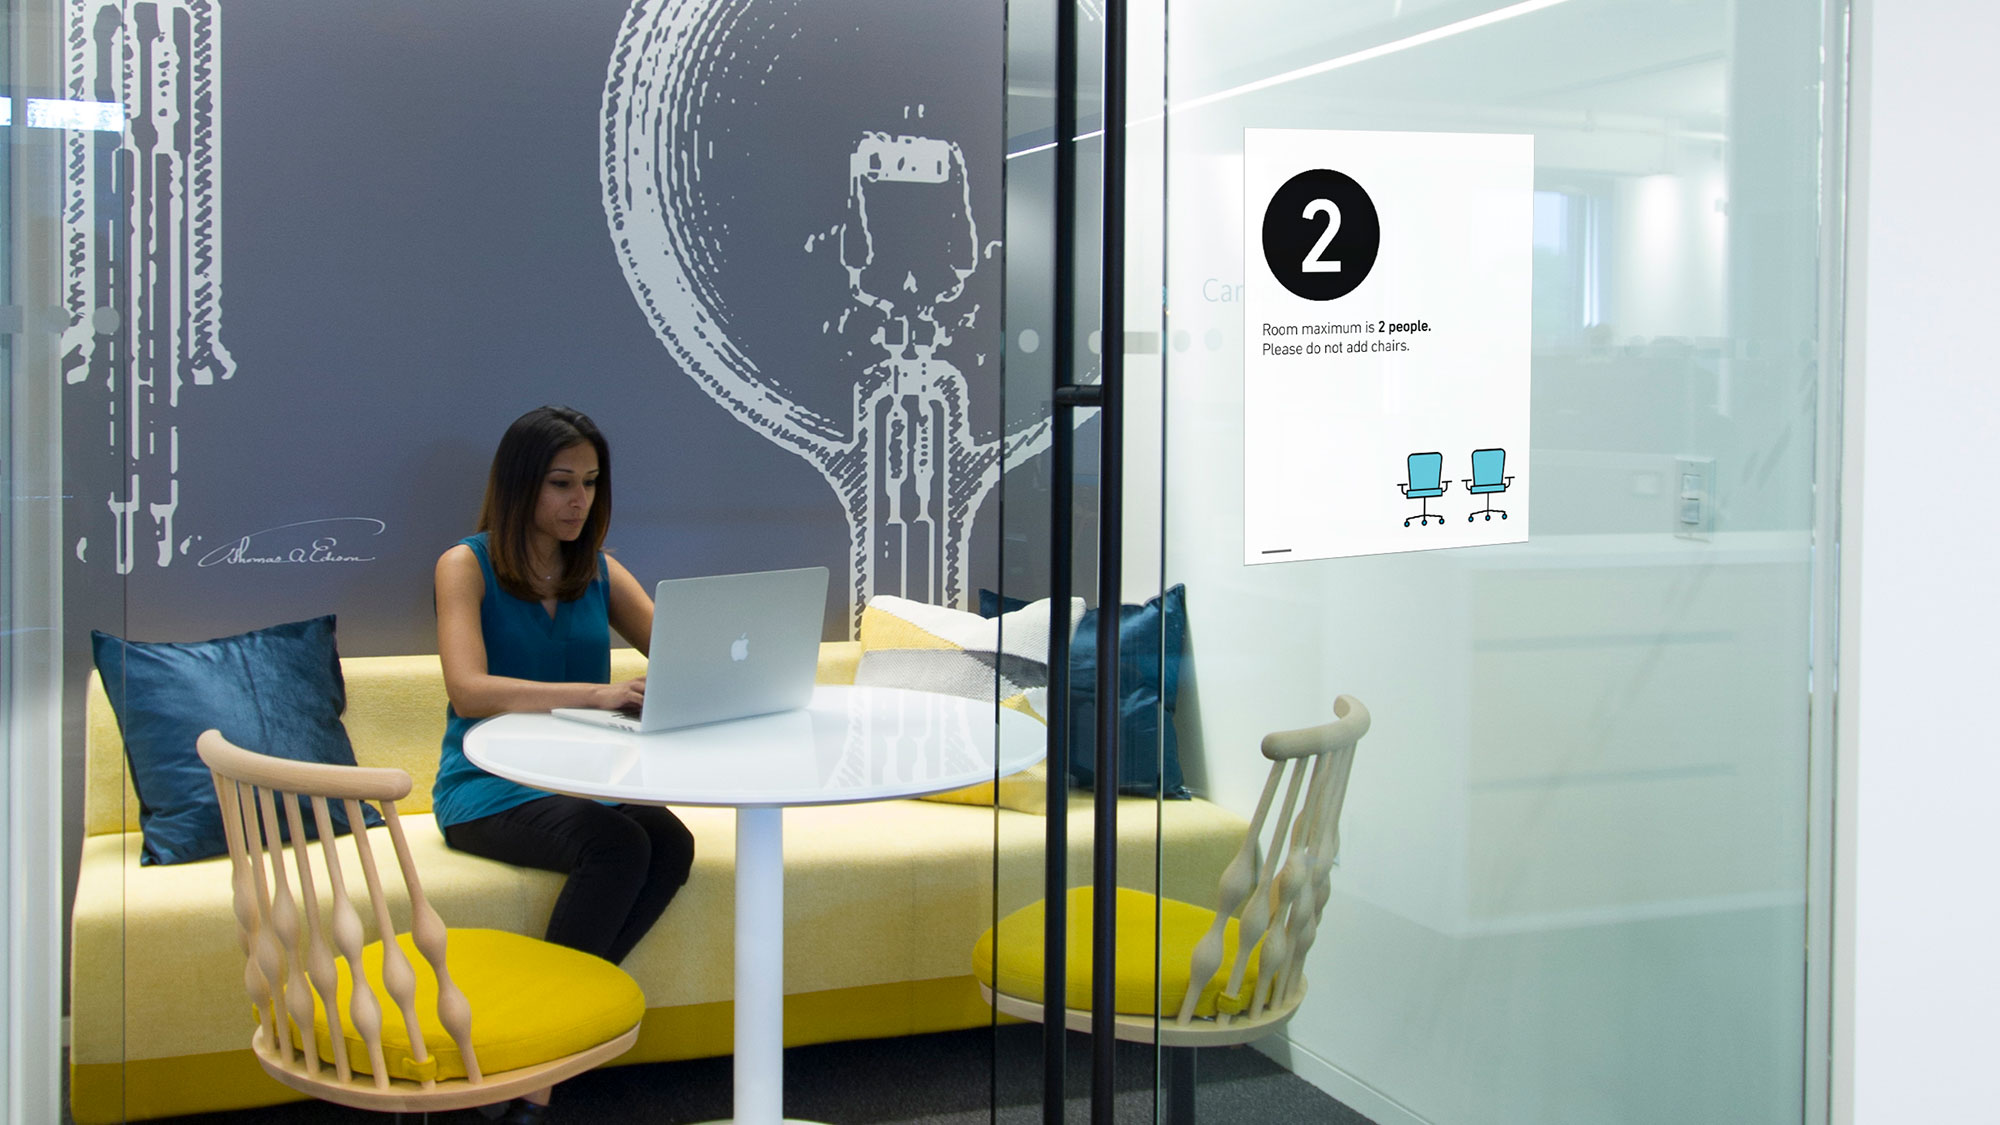 An office conference room displays a sign limiting occupancy to two people. It's an example of suggestions the design firm Gensler is providing to clients.